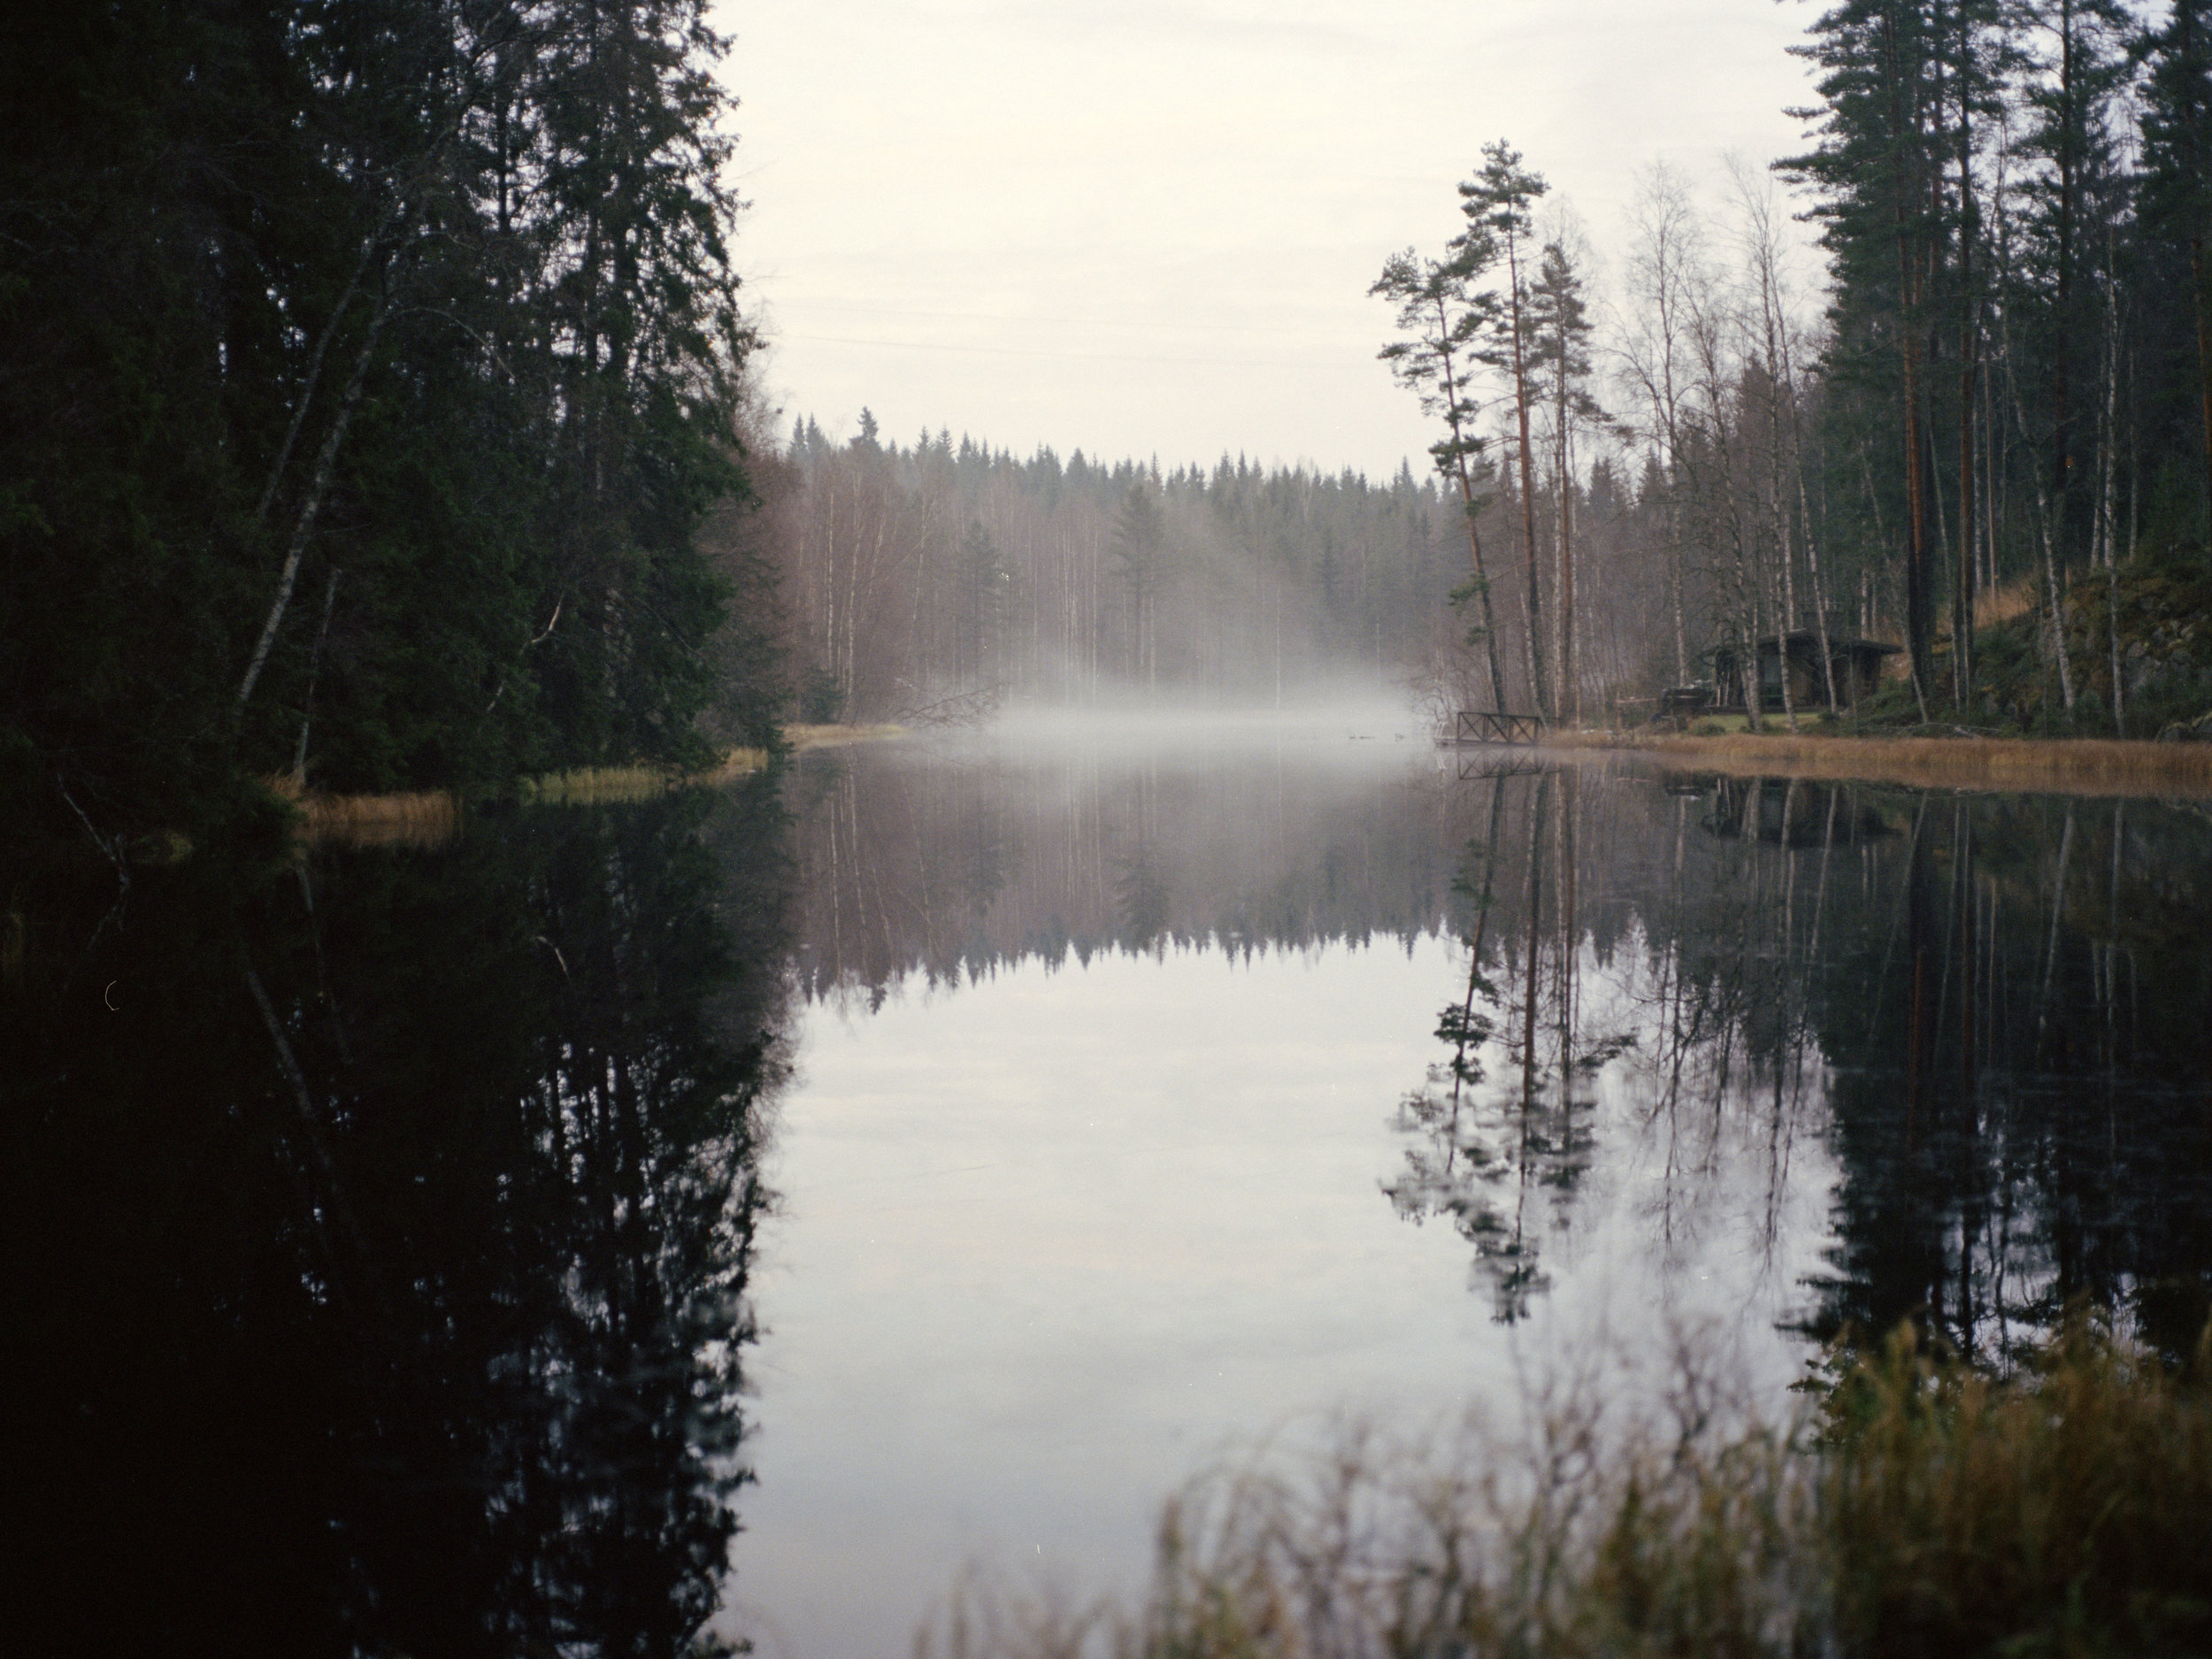 """Paavo died 31 years old. It was gloomy night, and his wife Hilma and his kids was asleep in Lehtola. Paavo had driven his brother to a party in a town 30 kilometers away on a motorcycle. Suddenly, Hilma woke up and shouted: """"Did you hear that?"""" But it was completely quiet in the woods. """"Someone had an accident on a motorcycle,"""" Hilma said. The following morning Paavo was found with a skull fracture over ten kilometers away."""